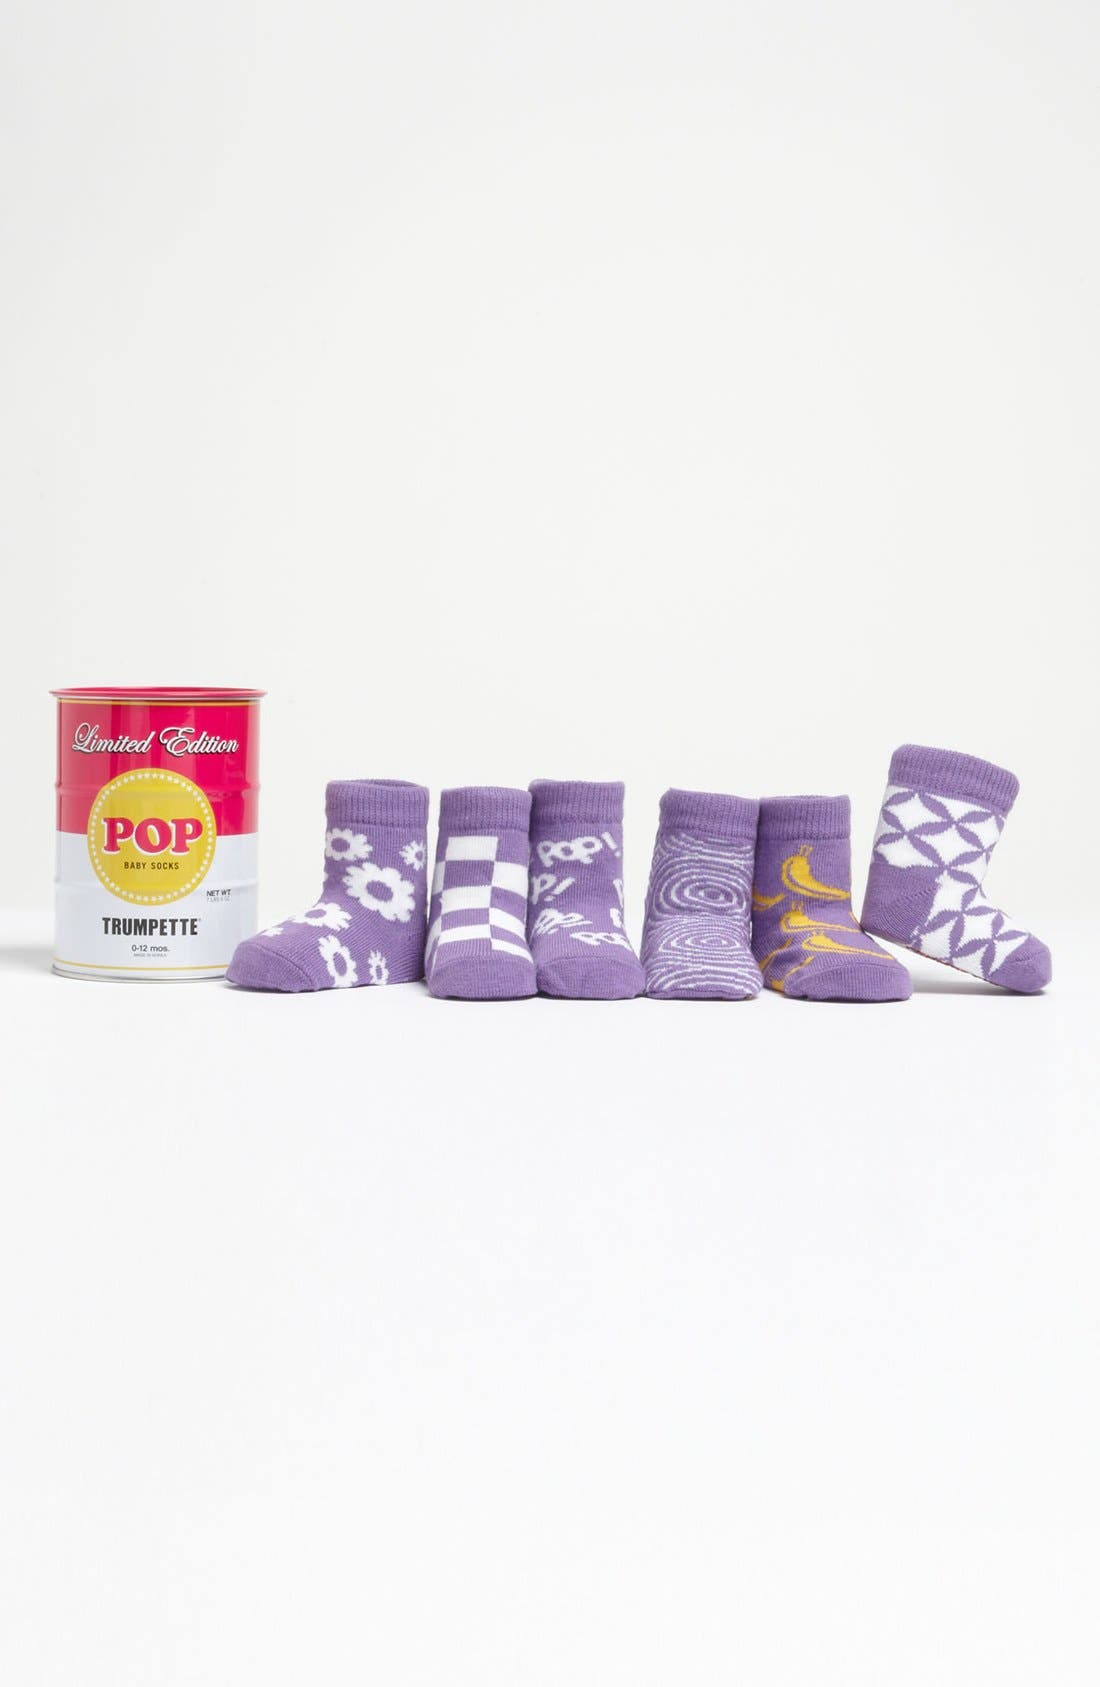 Main Image - Trumpette 'Pop Socks in a Tin Can' Sock Set (6-Pack)(Baby Girls)